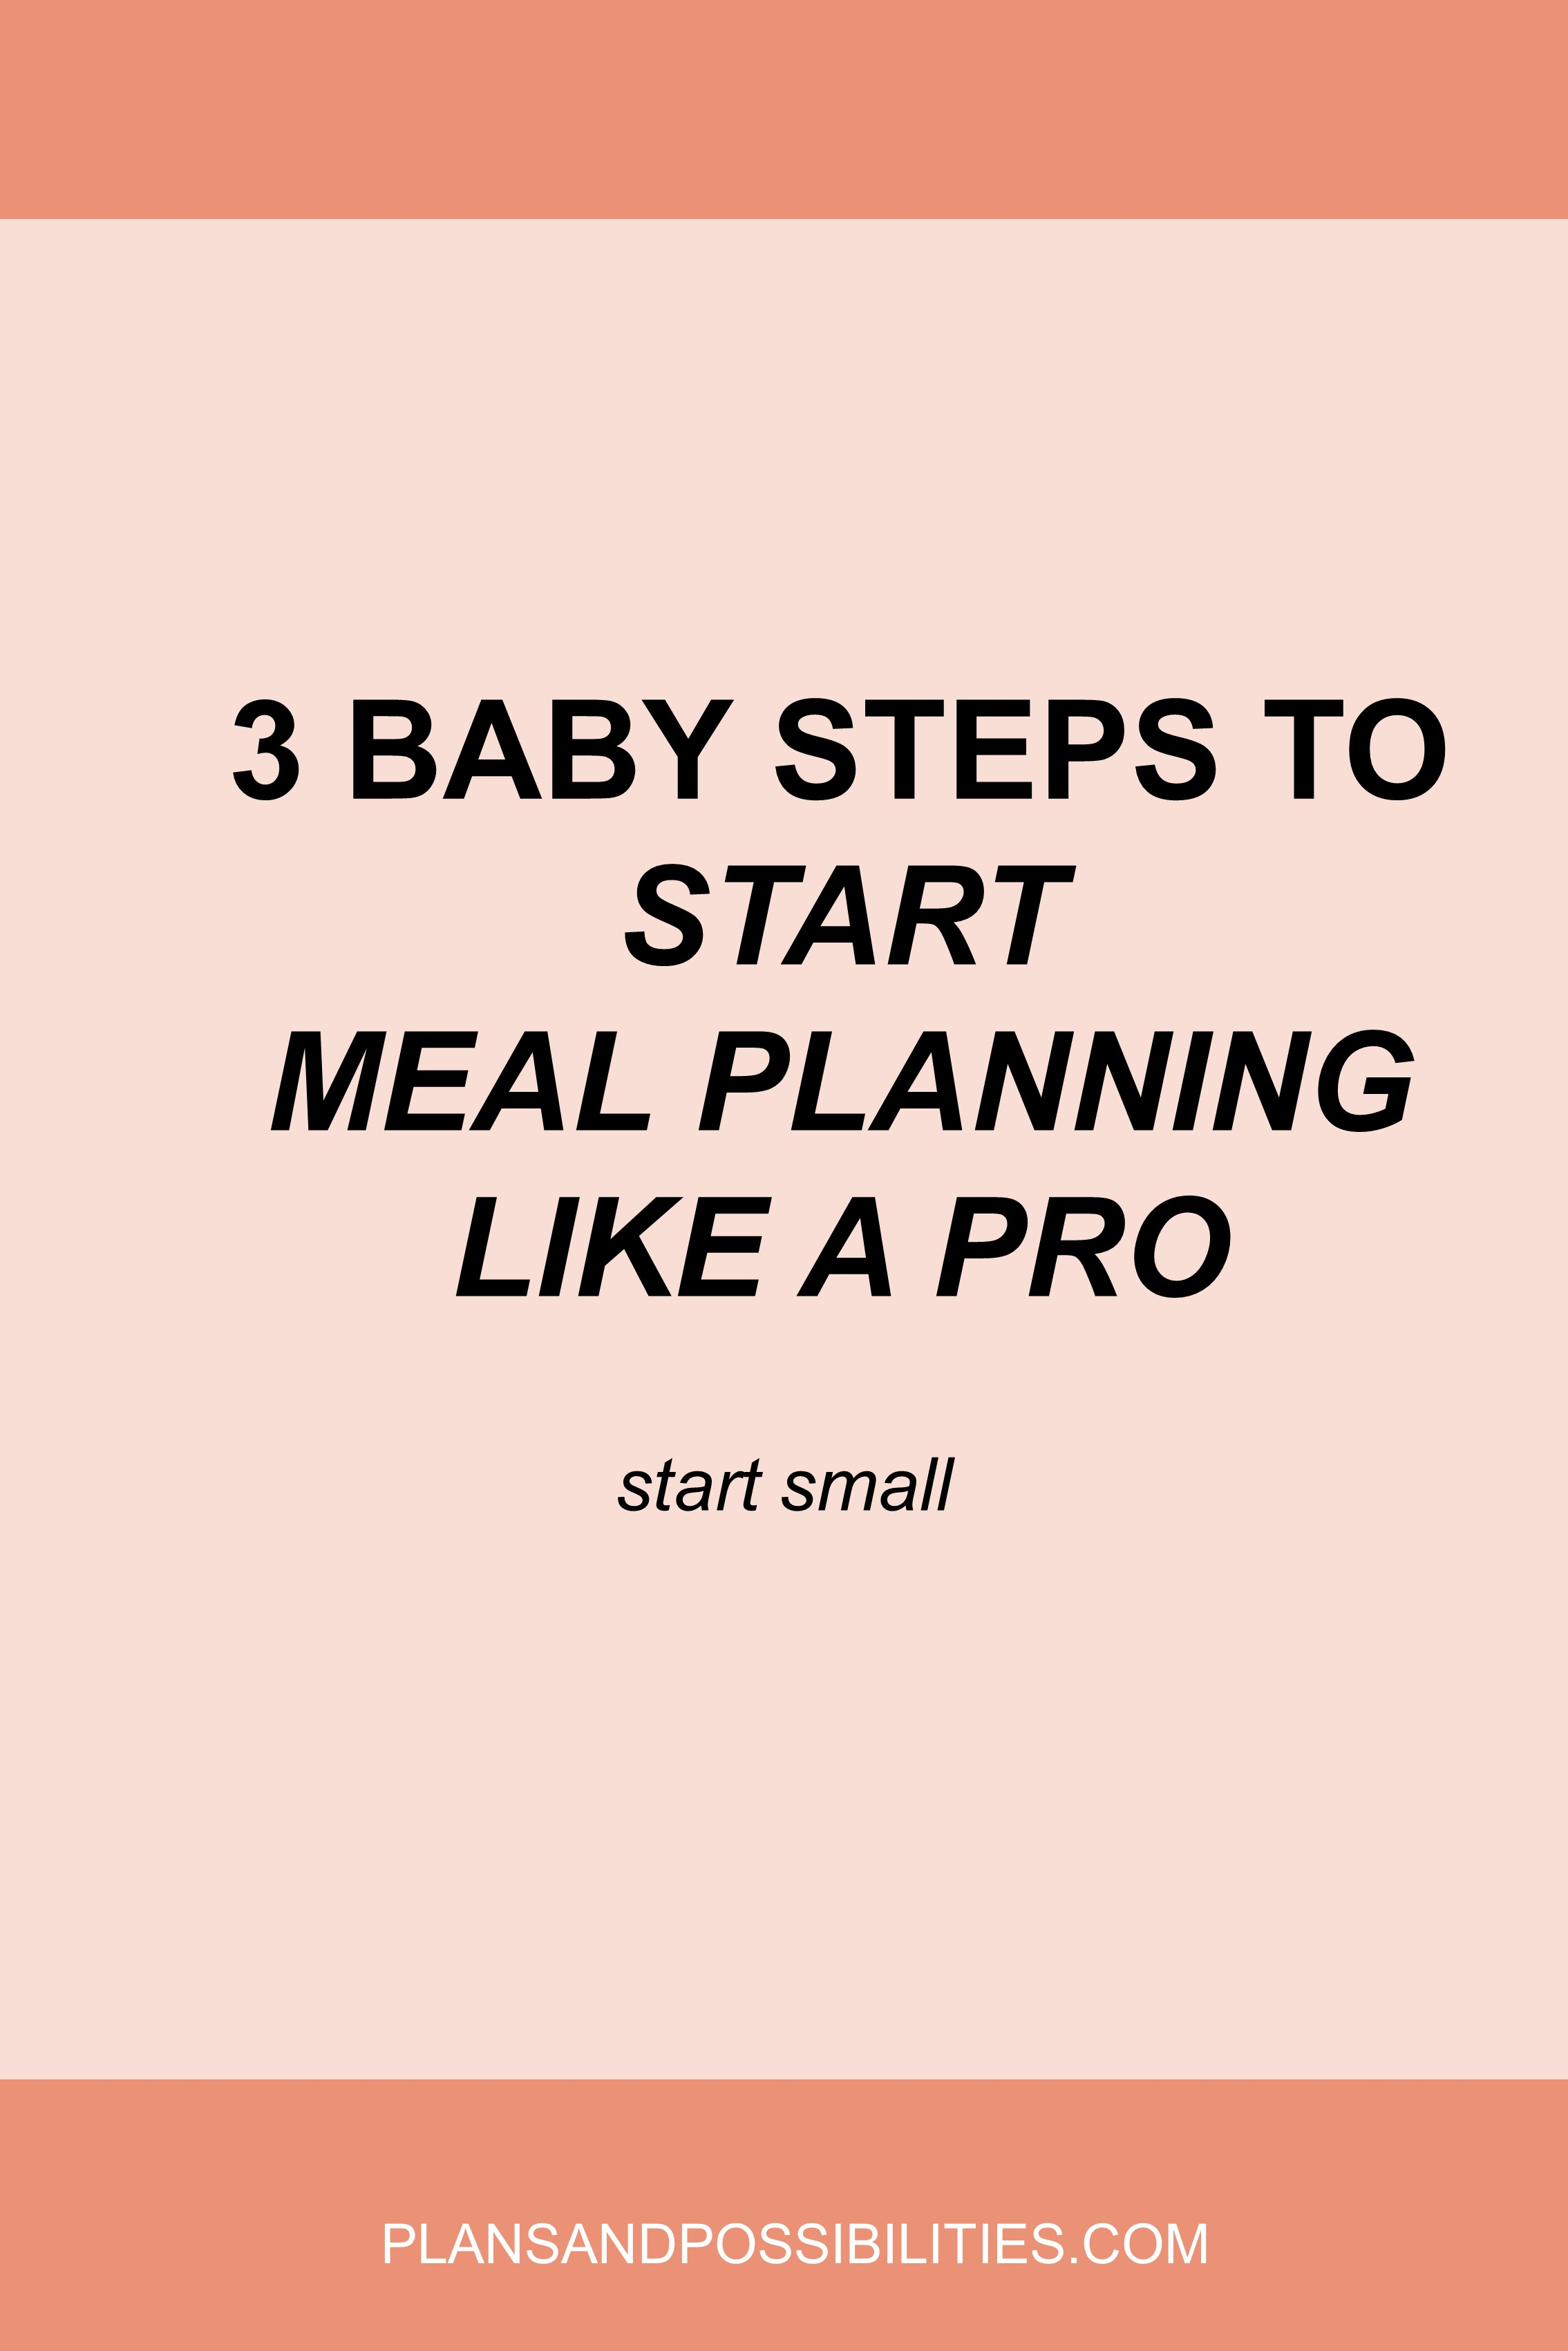 3 Baby Steps To Start Meal Planning Like A Pro.jpg